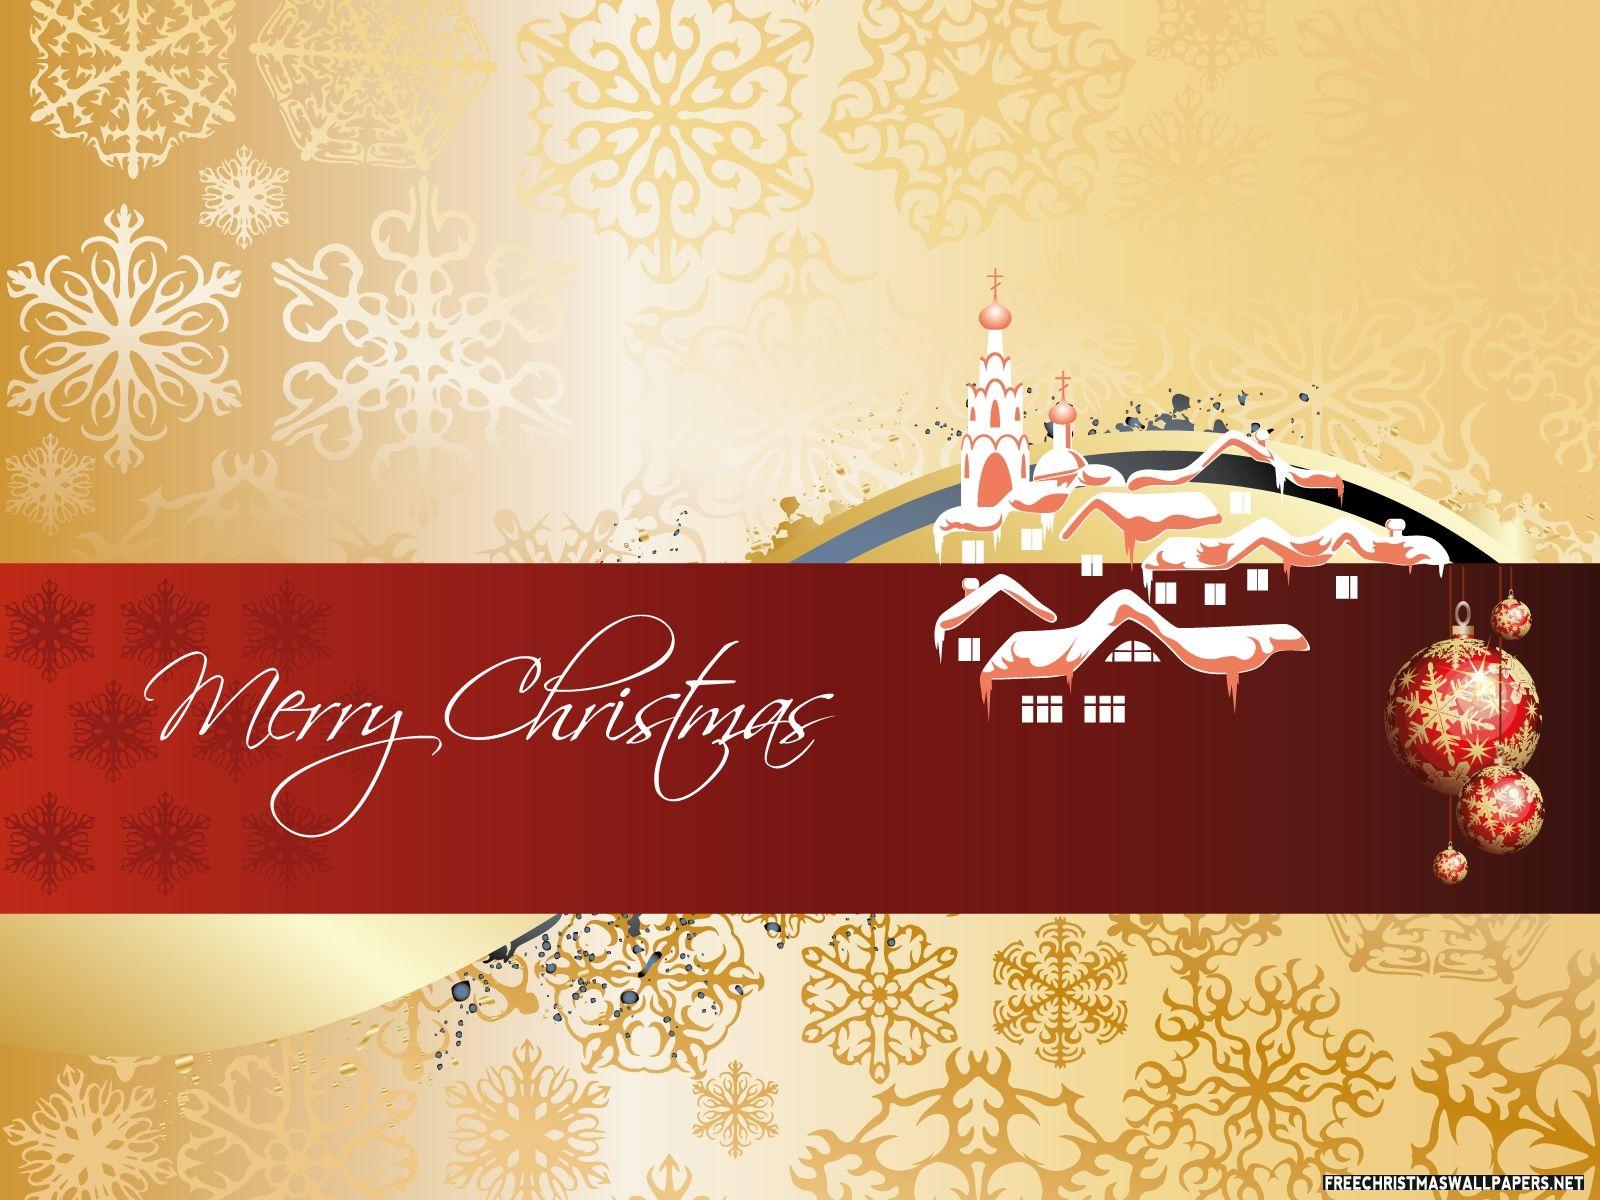 Pin by hilko rensel on christmaswinter pc wallpapers christmas wishes m4hsunfo